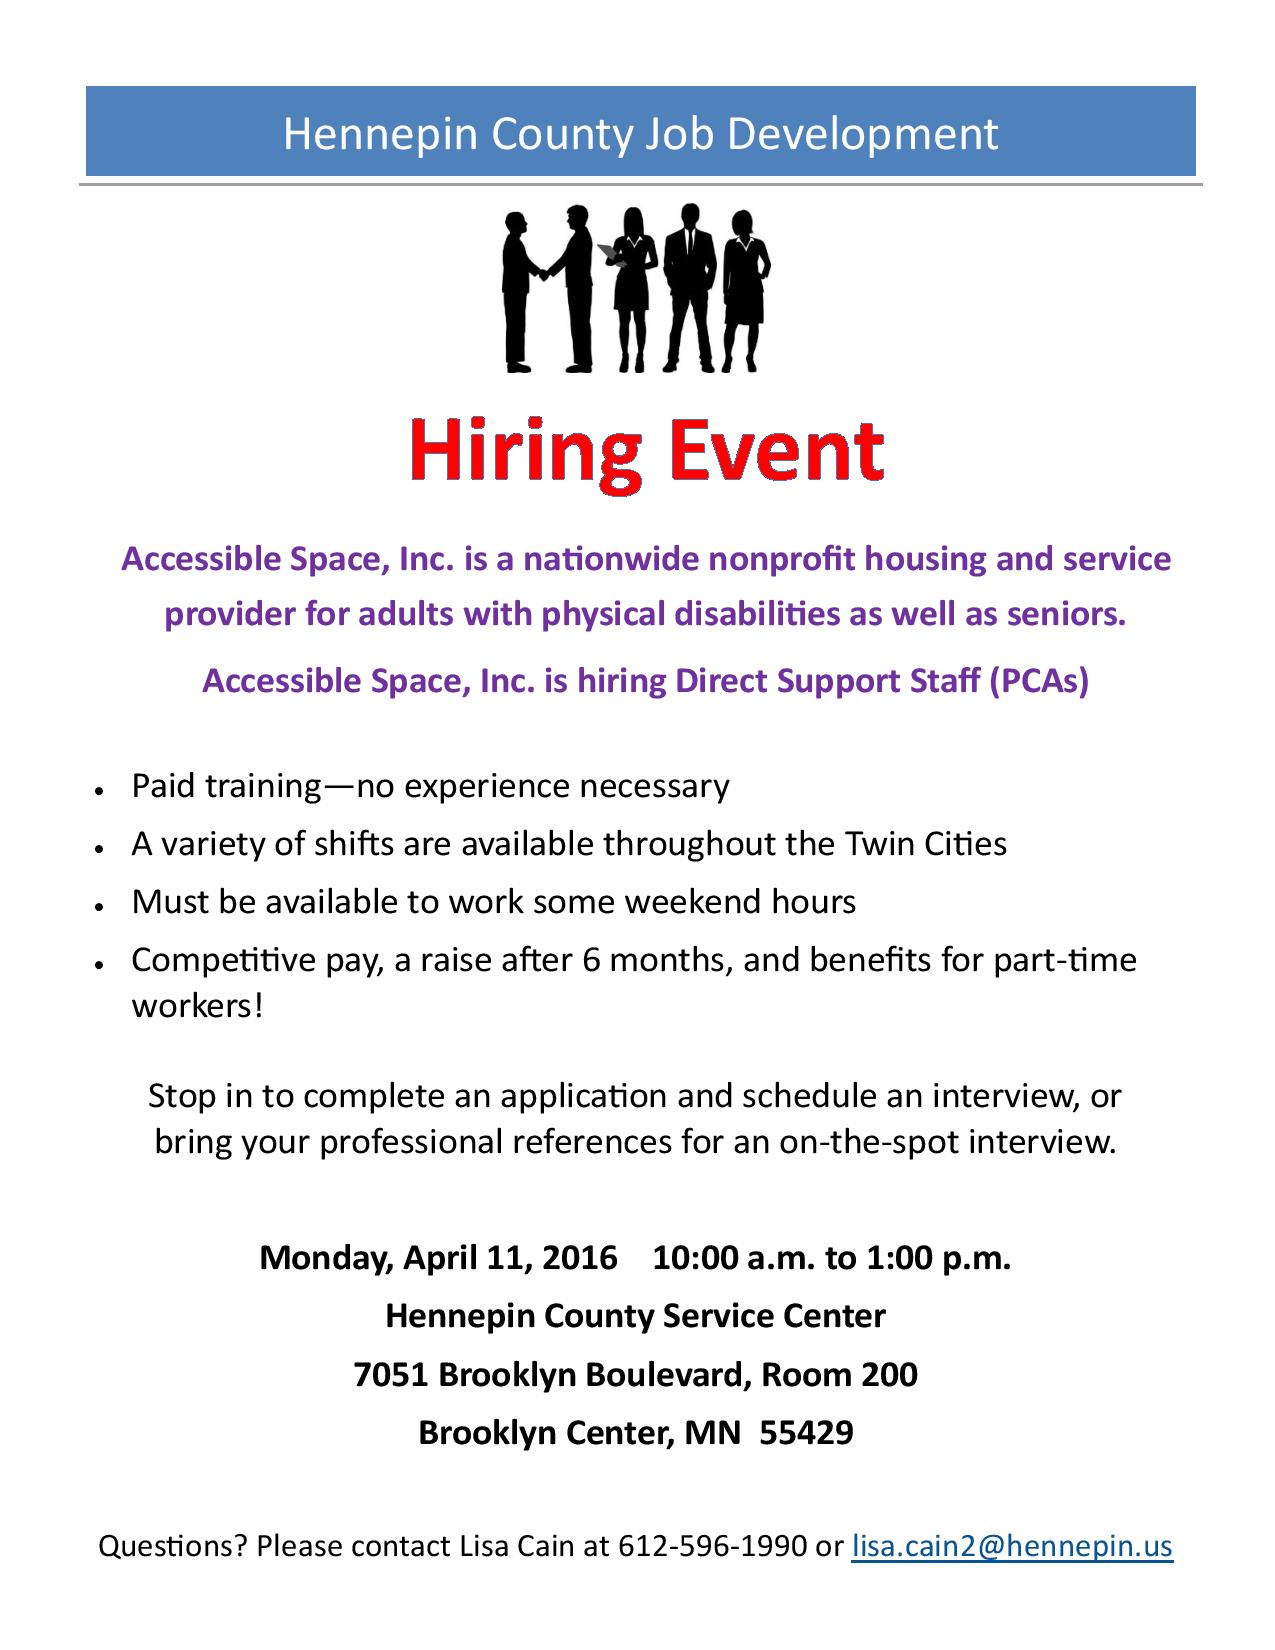 accessible_space_hiring_event_April_2016-page-001.jpg